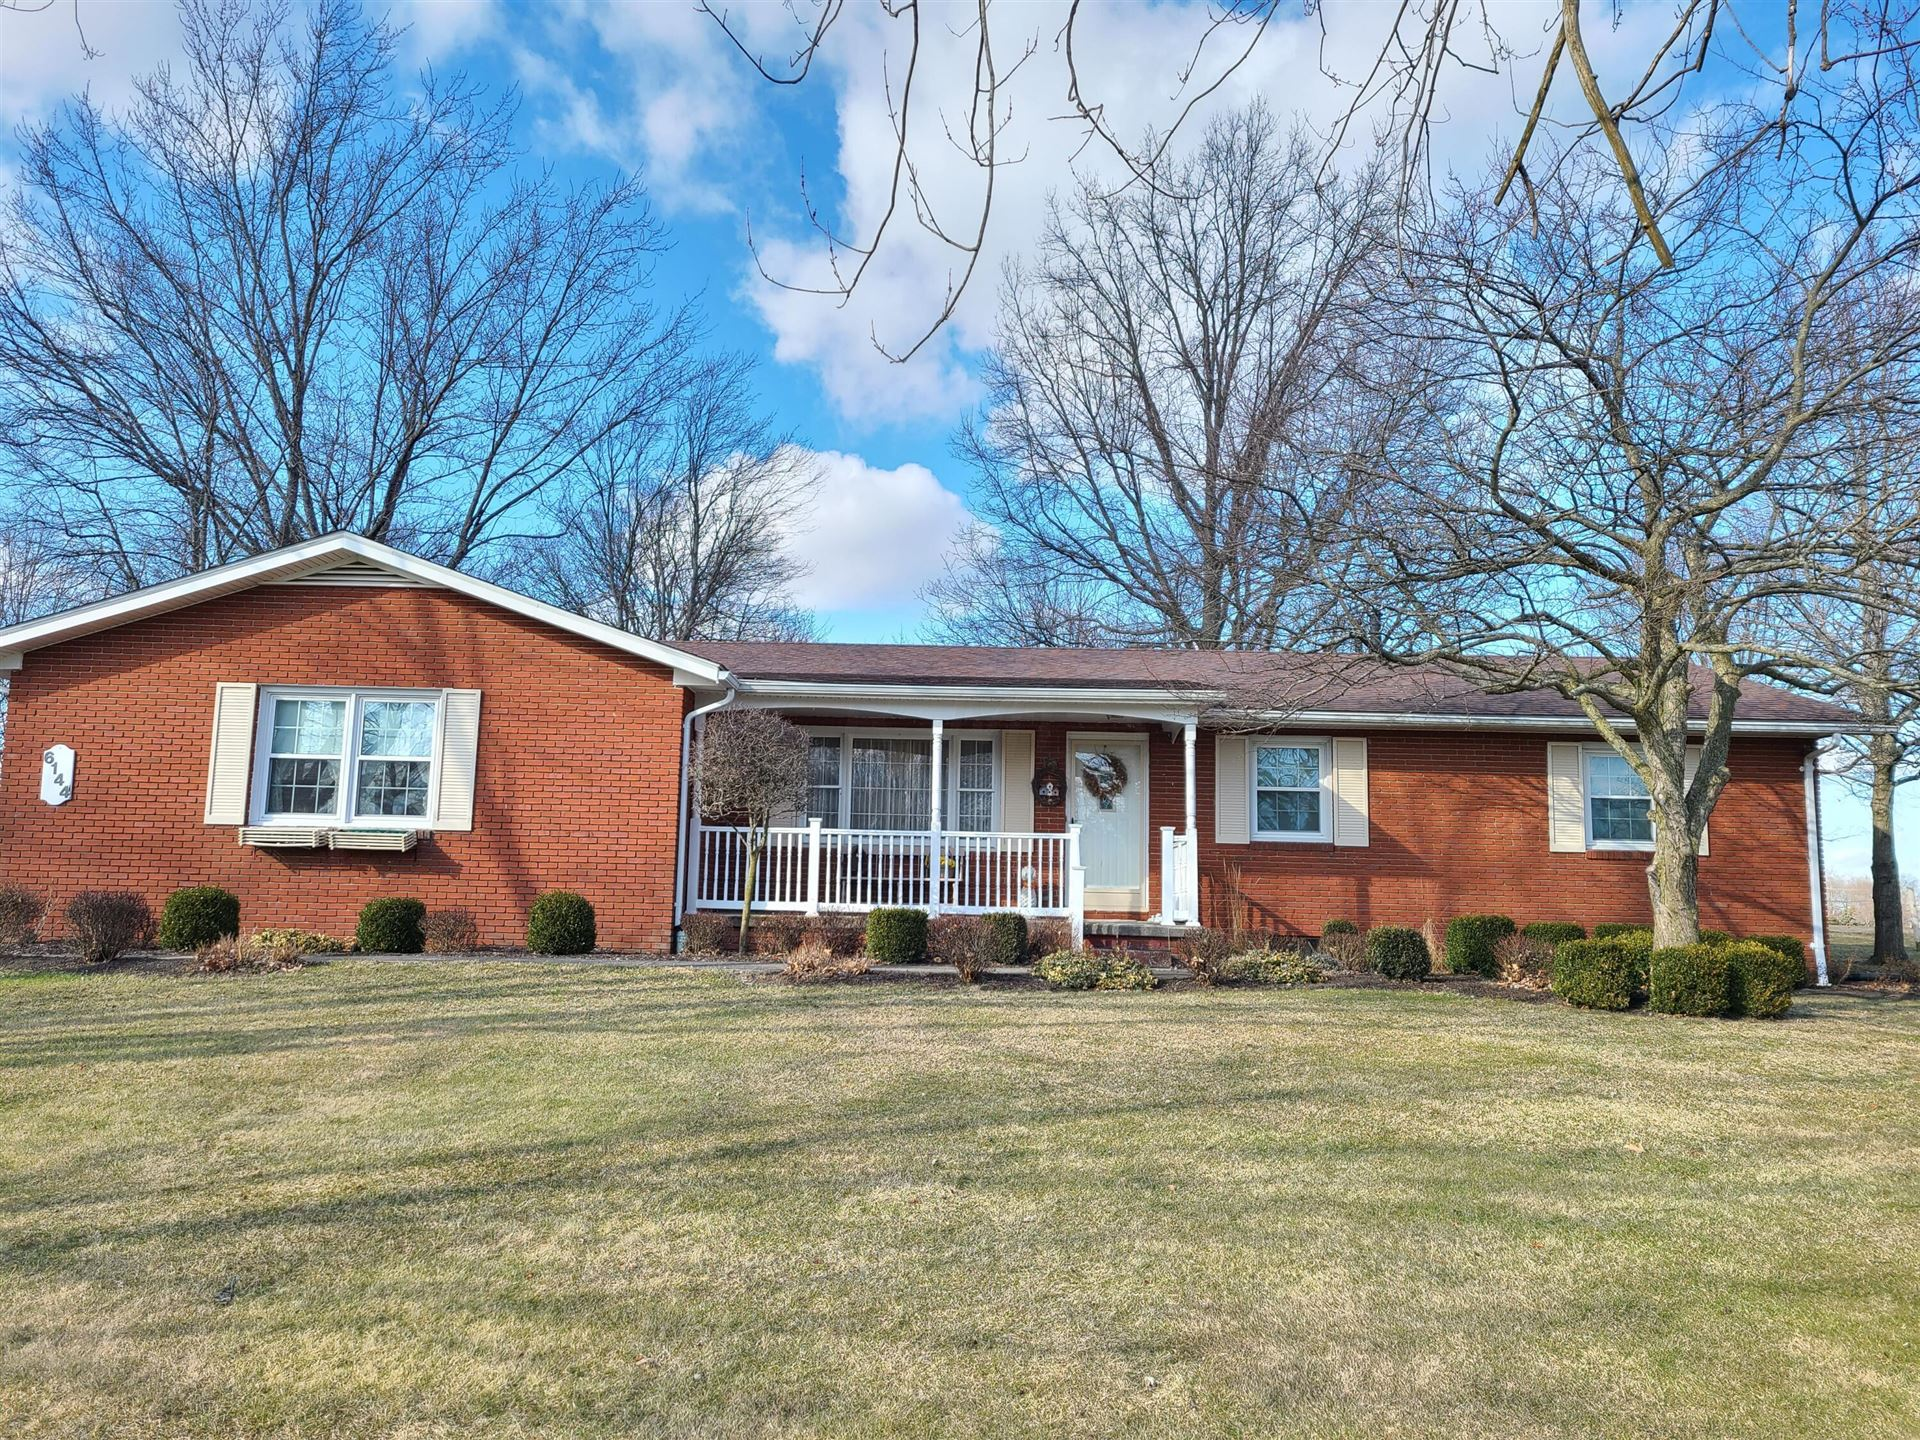 Photo for 6144 Tracht Drive, Galion, OH 44833 (MLS # 221006334)